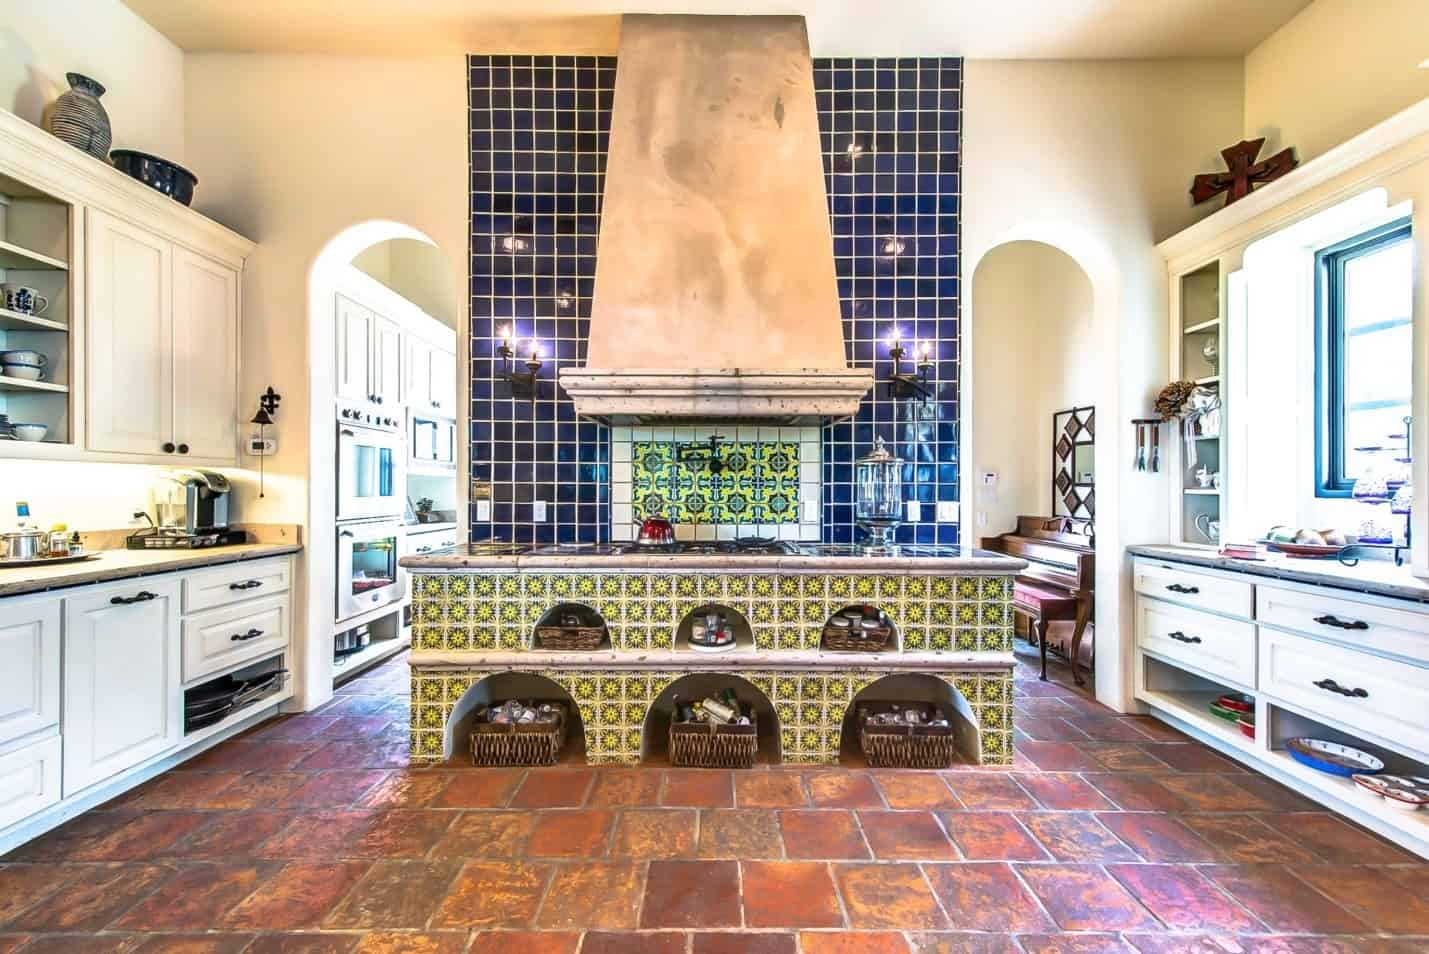 Tiled Kitchens Ideas 44 Top Talavera Tile Design Ideas